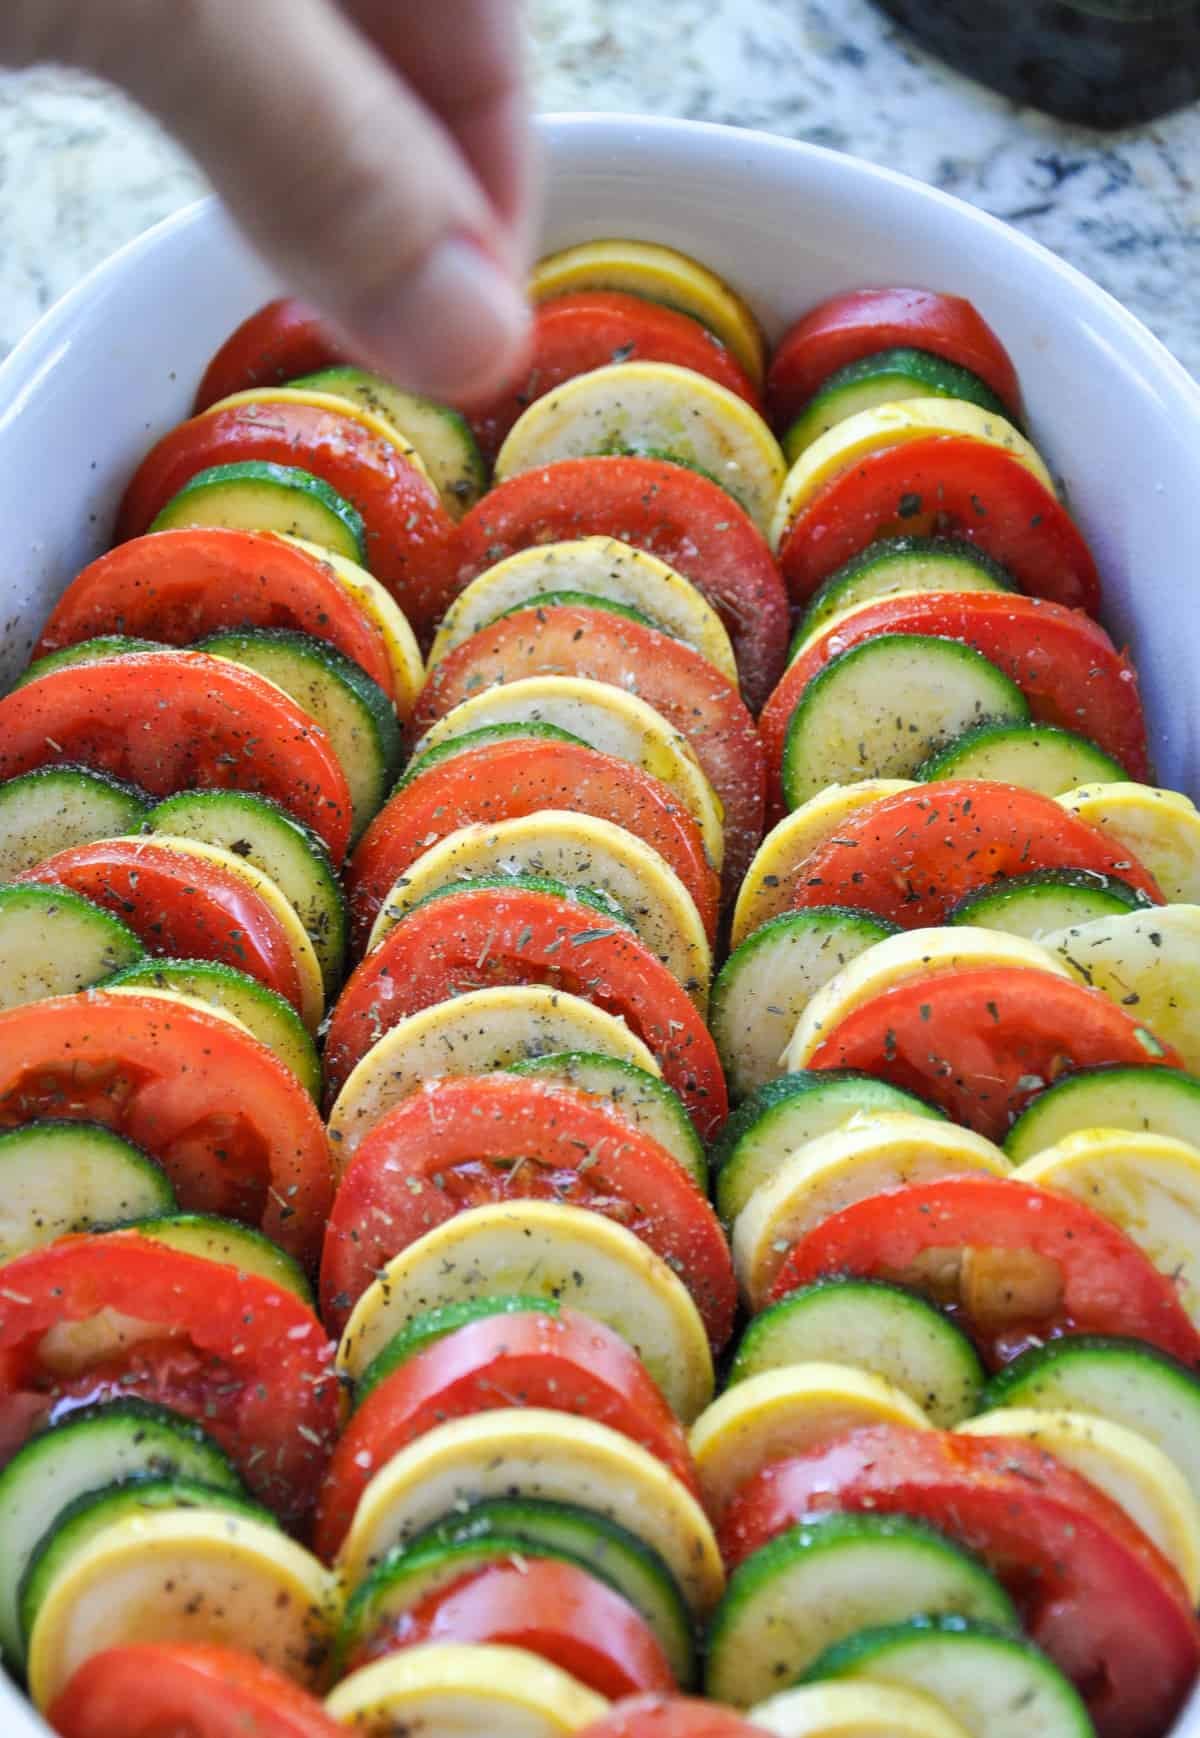 Sprinkle dried basil over layered zucchini and tomatoes